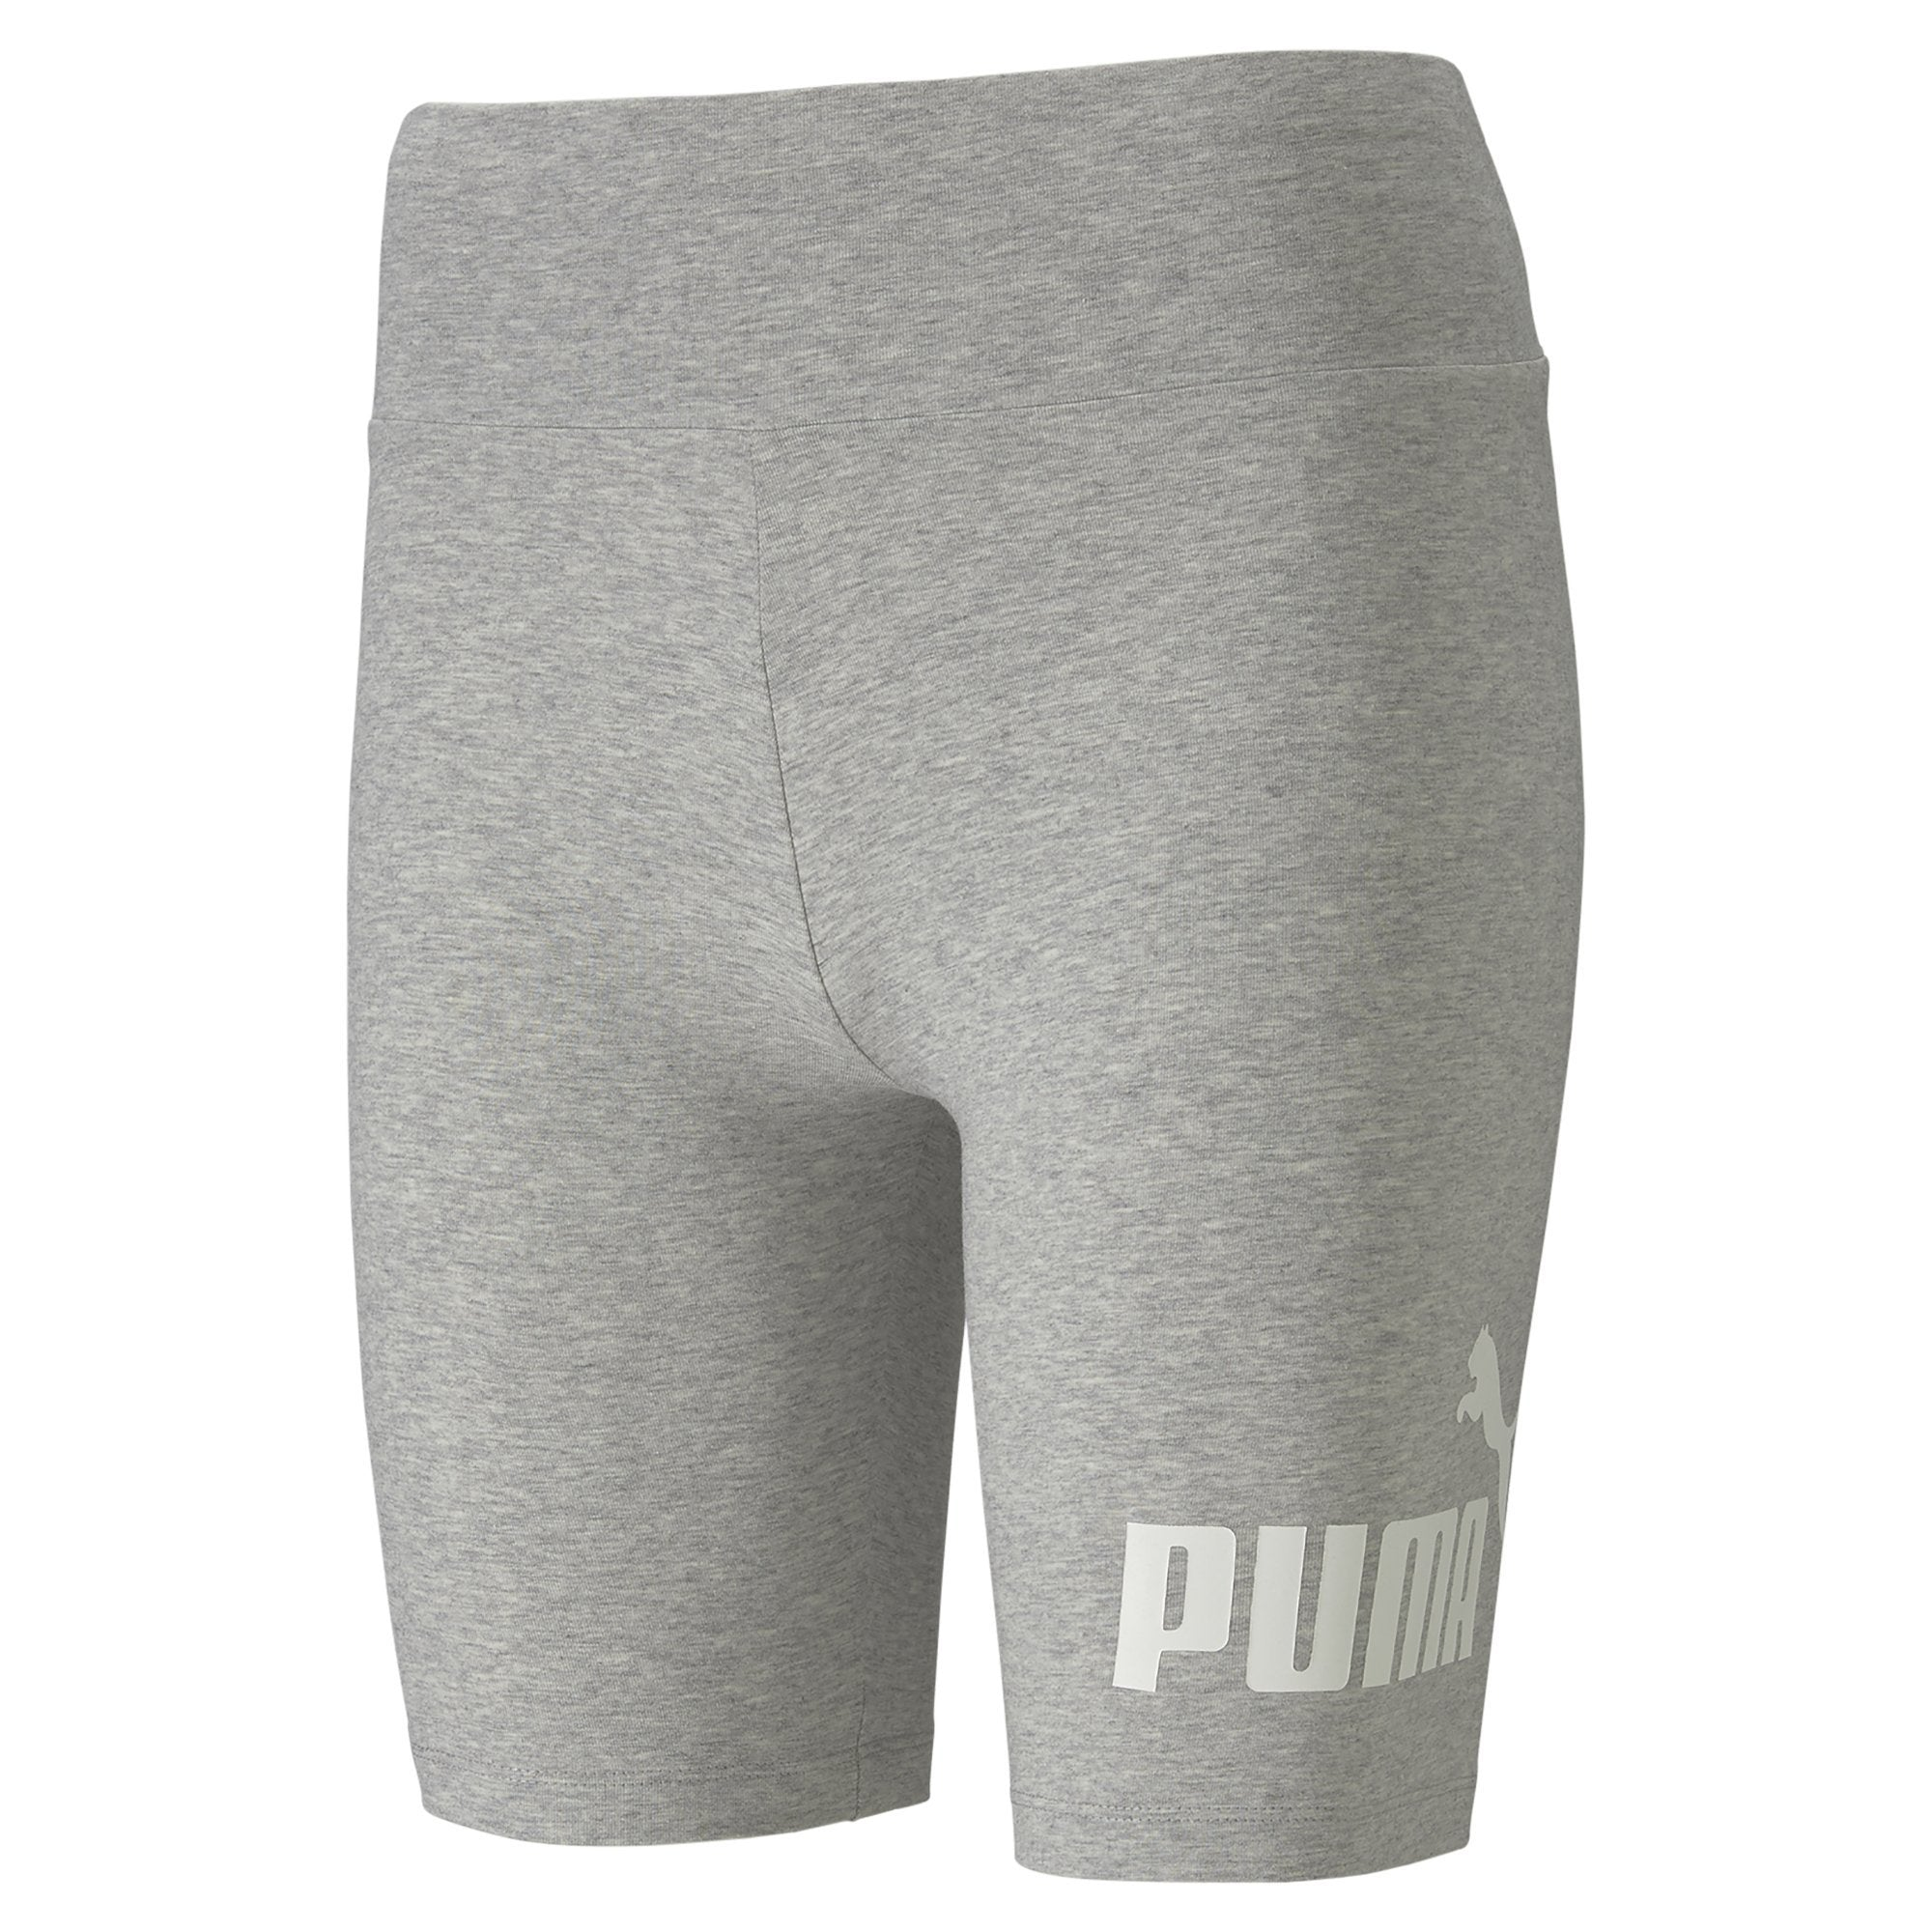 "Puma Eseentials+ Women's 7"" Short Tight - Light Gray Heather SP-ApparelShorts-Womens Puma"